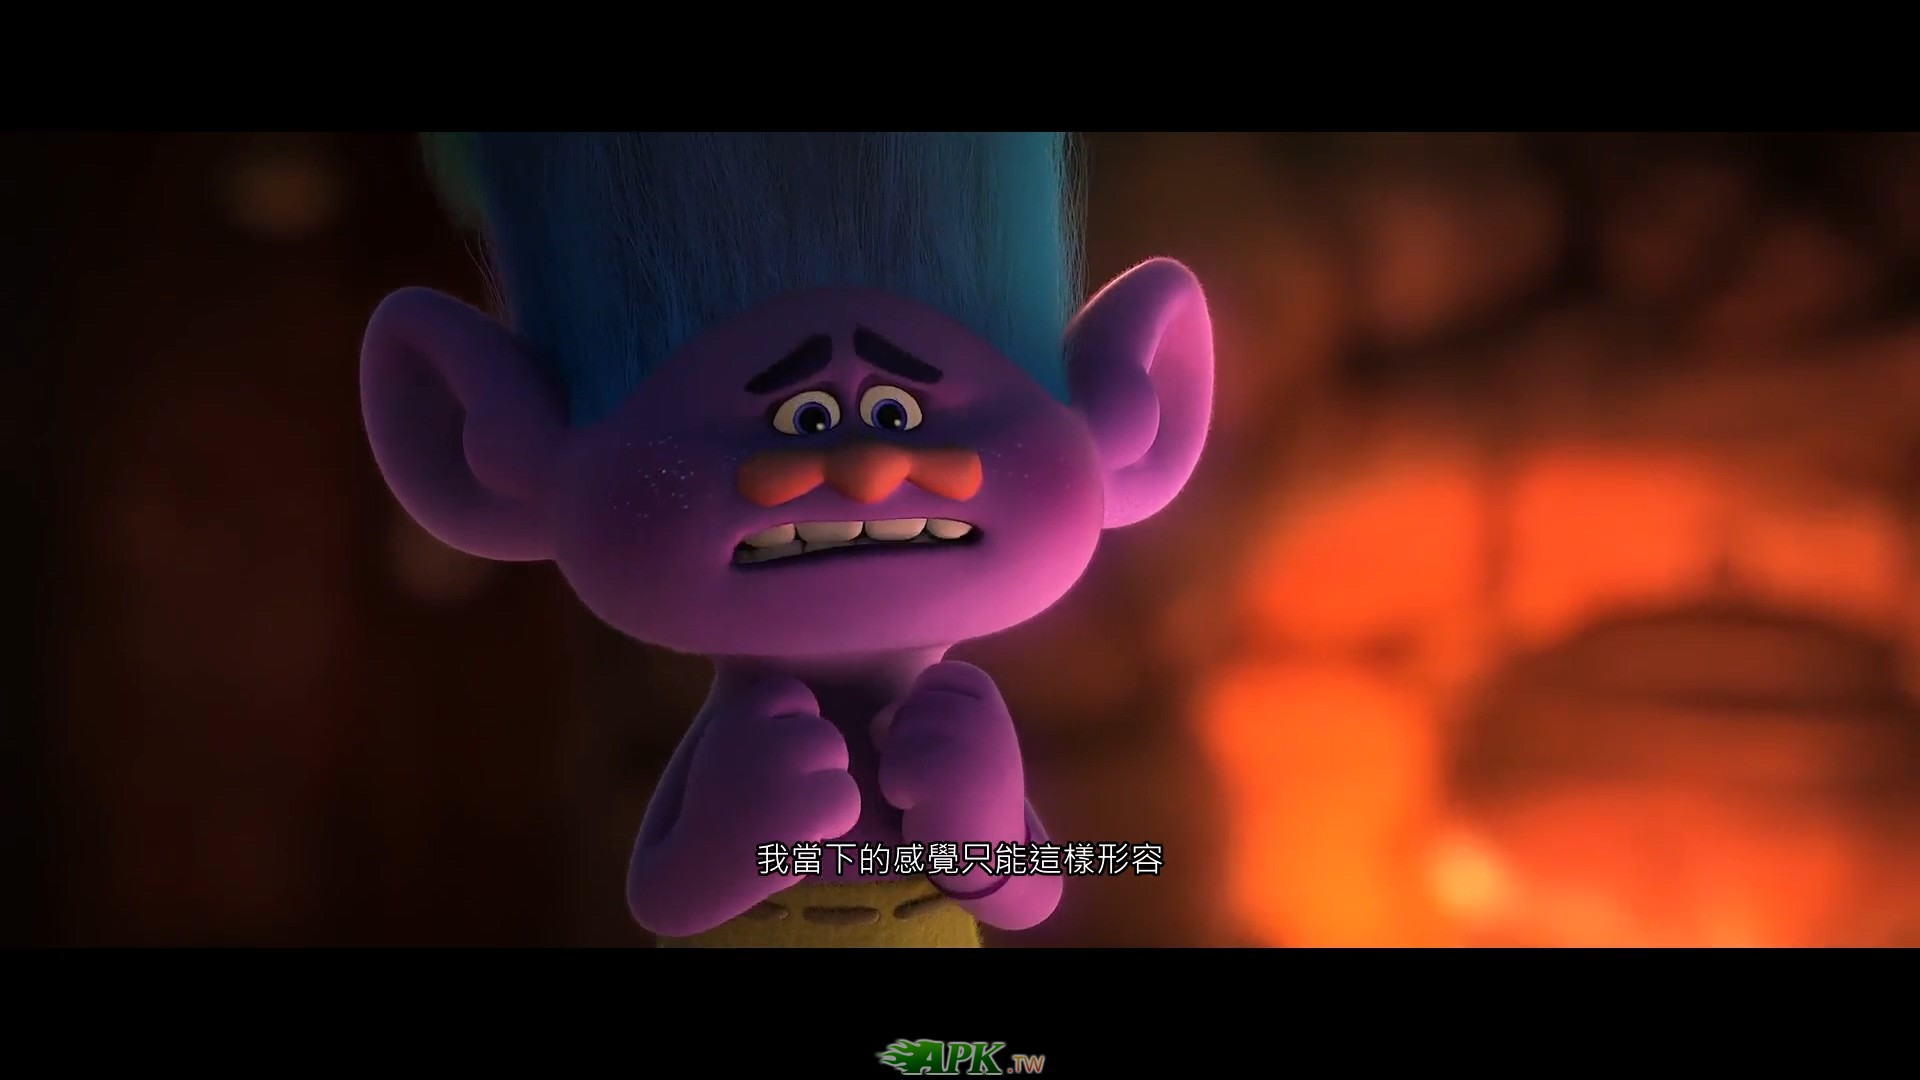 Trolls.2016.1080p.BluRay.H264.AAC-RARBG_x264.mp4_20170315_021254.378.jpg